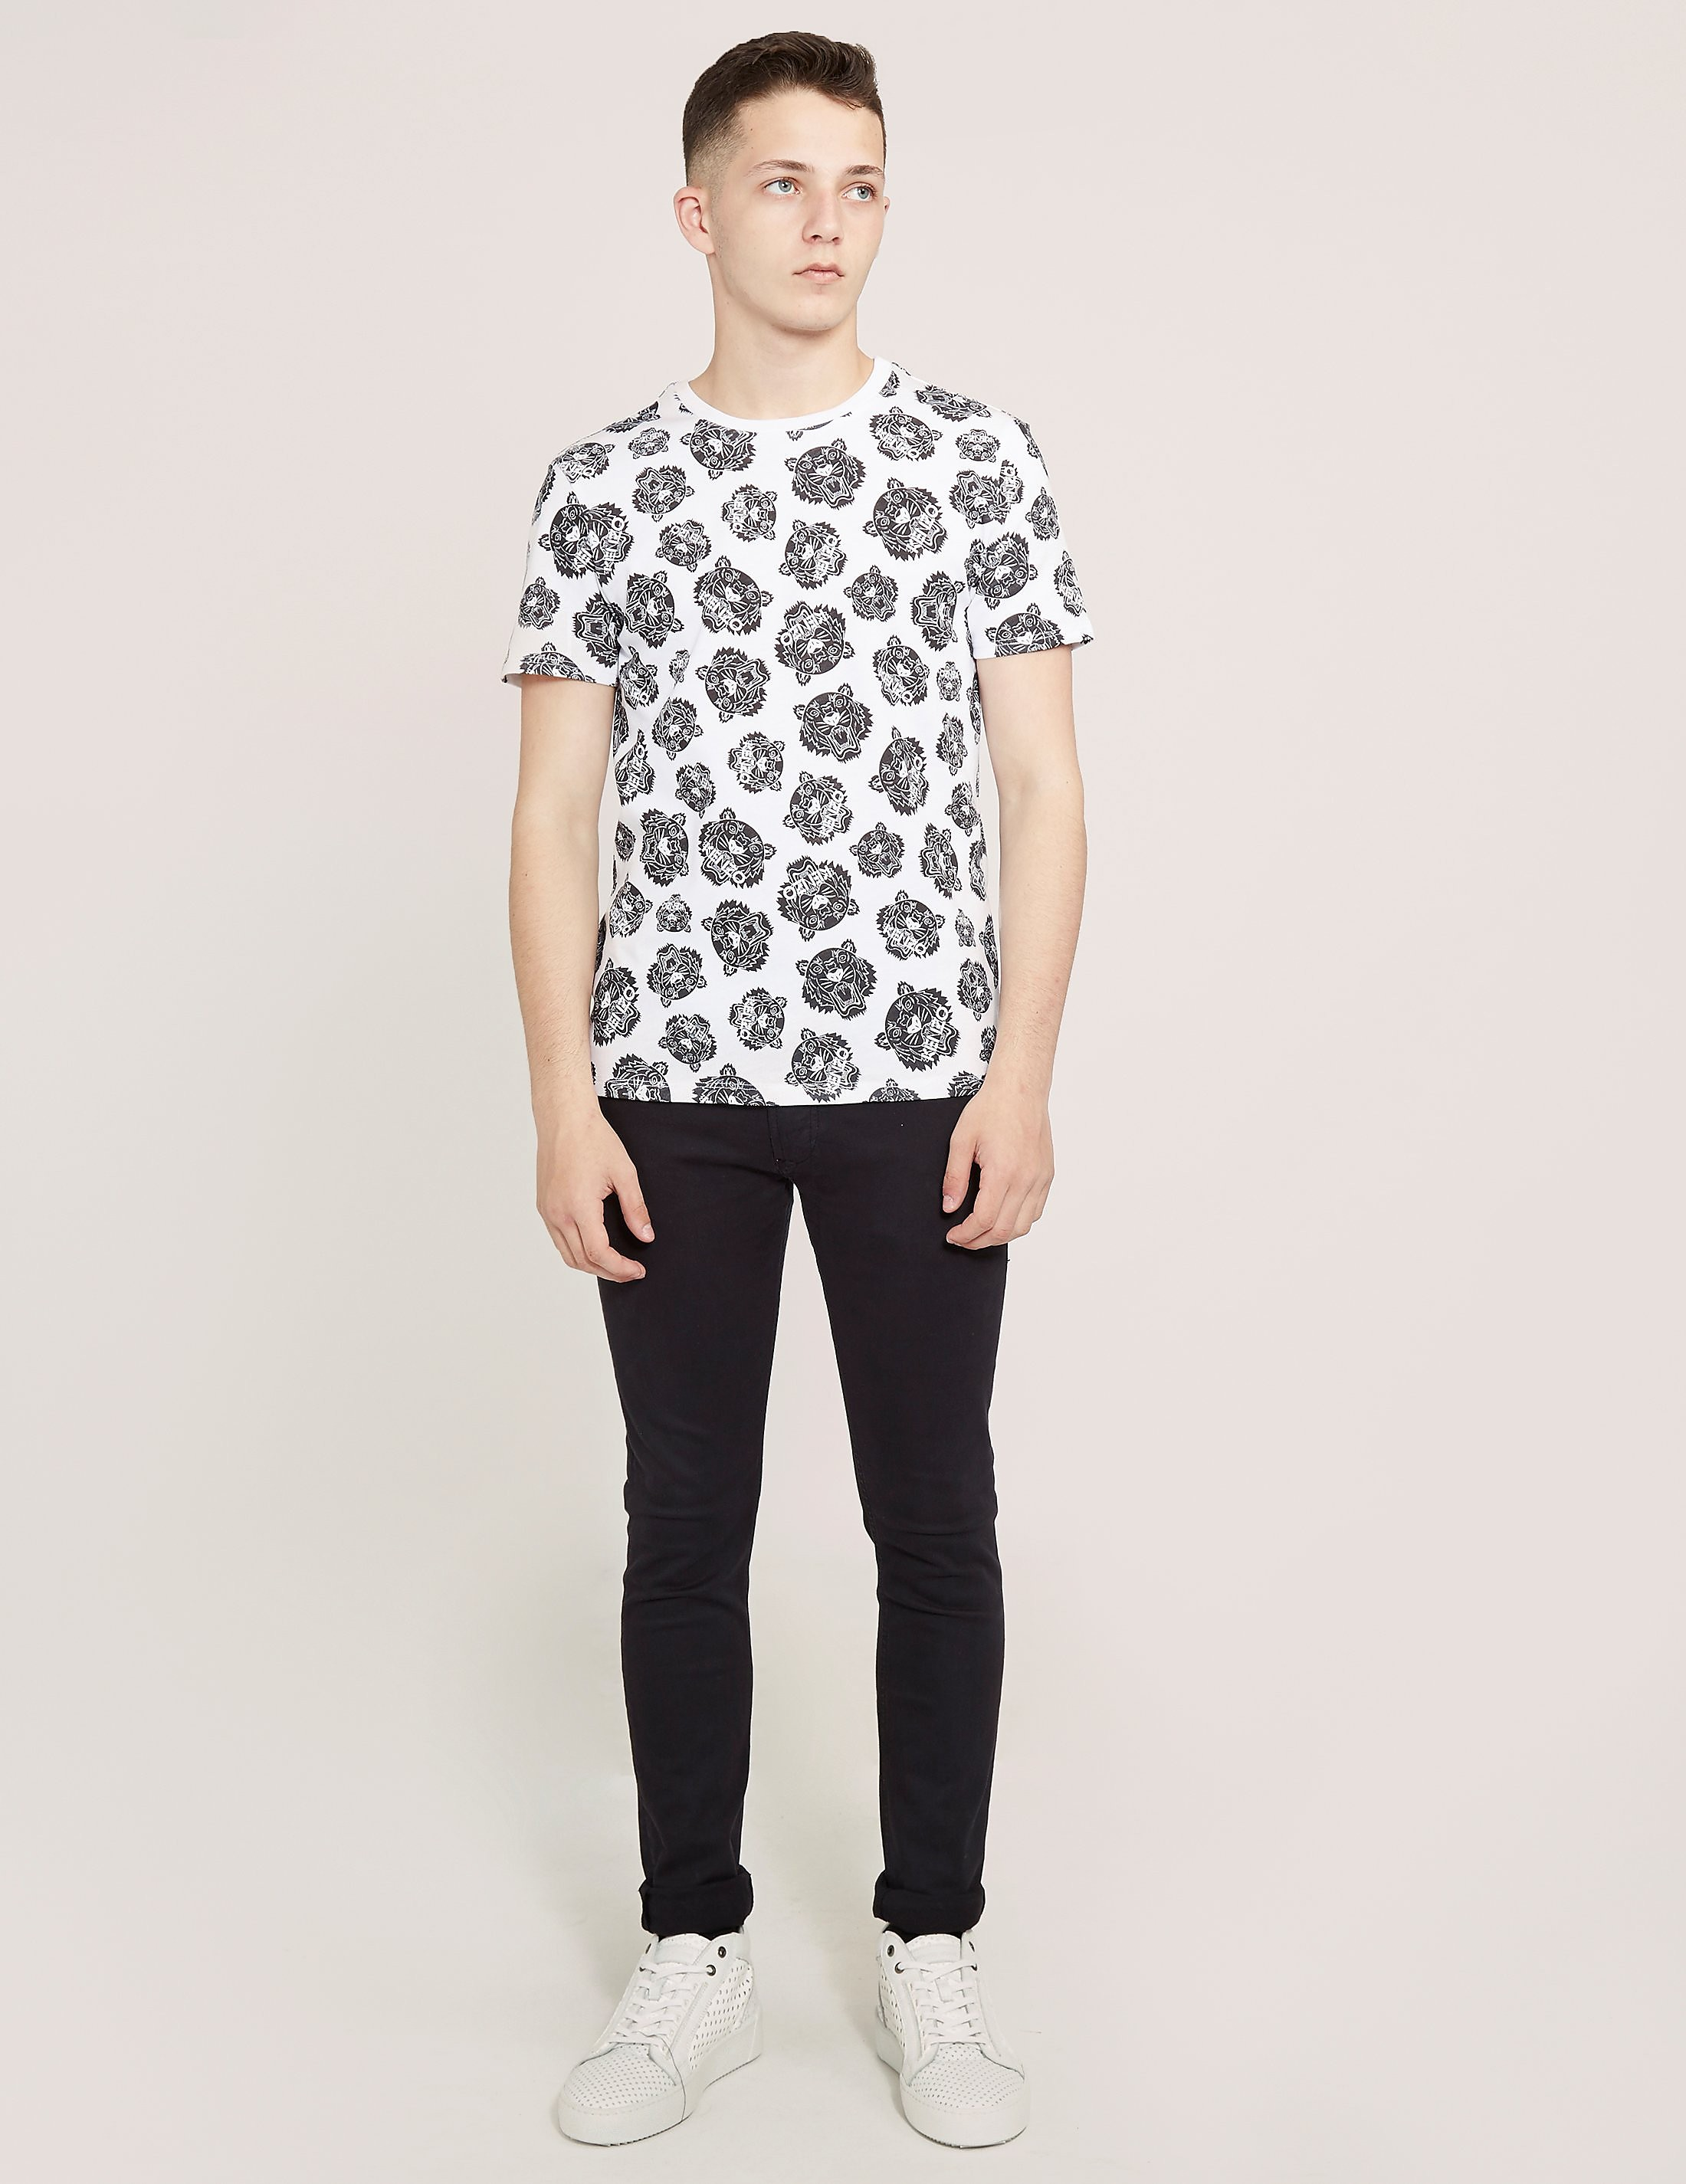 KENZO Printed Tiger Short Sleeve T-Shirt